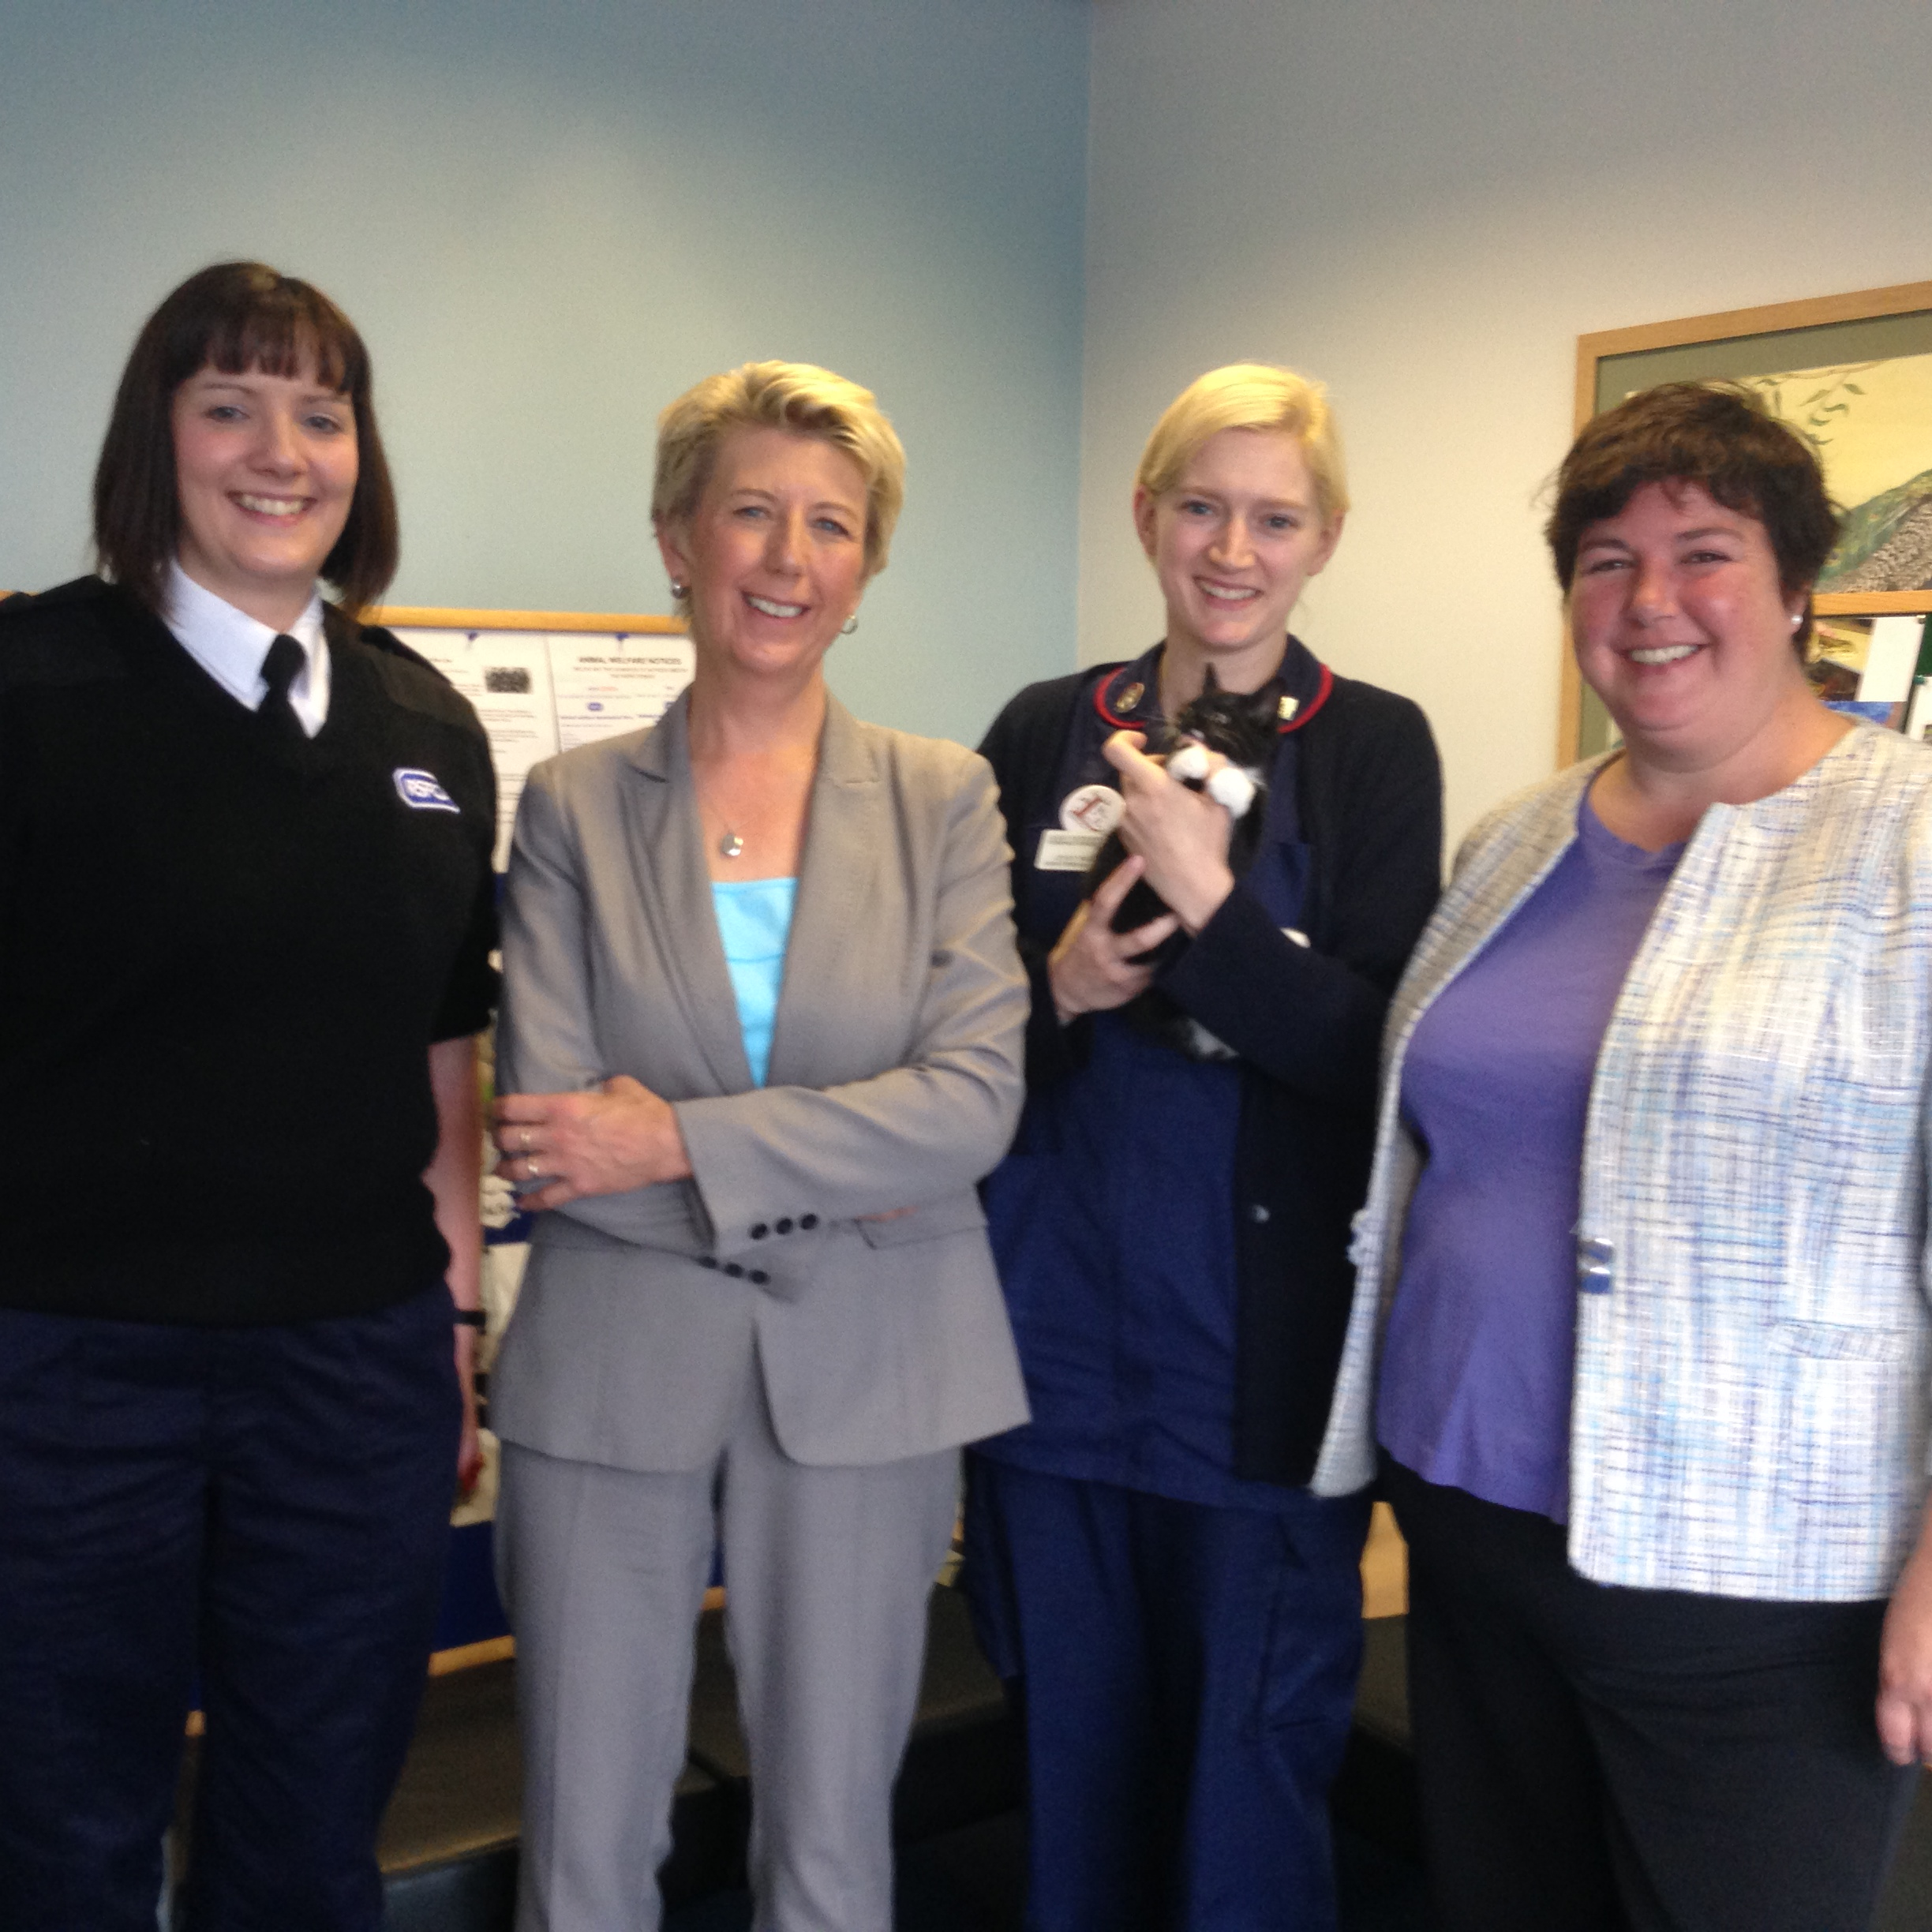 RSPCA_Inspector__Angela_Smith_MP__veterinary_nurse_from_Jacqui_Patersons__Louise_Baldock_and_a_small_kitten.jpg